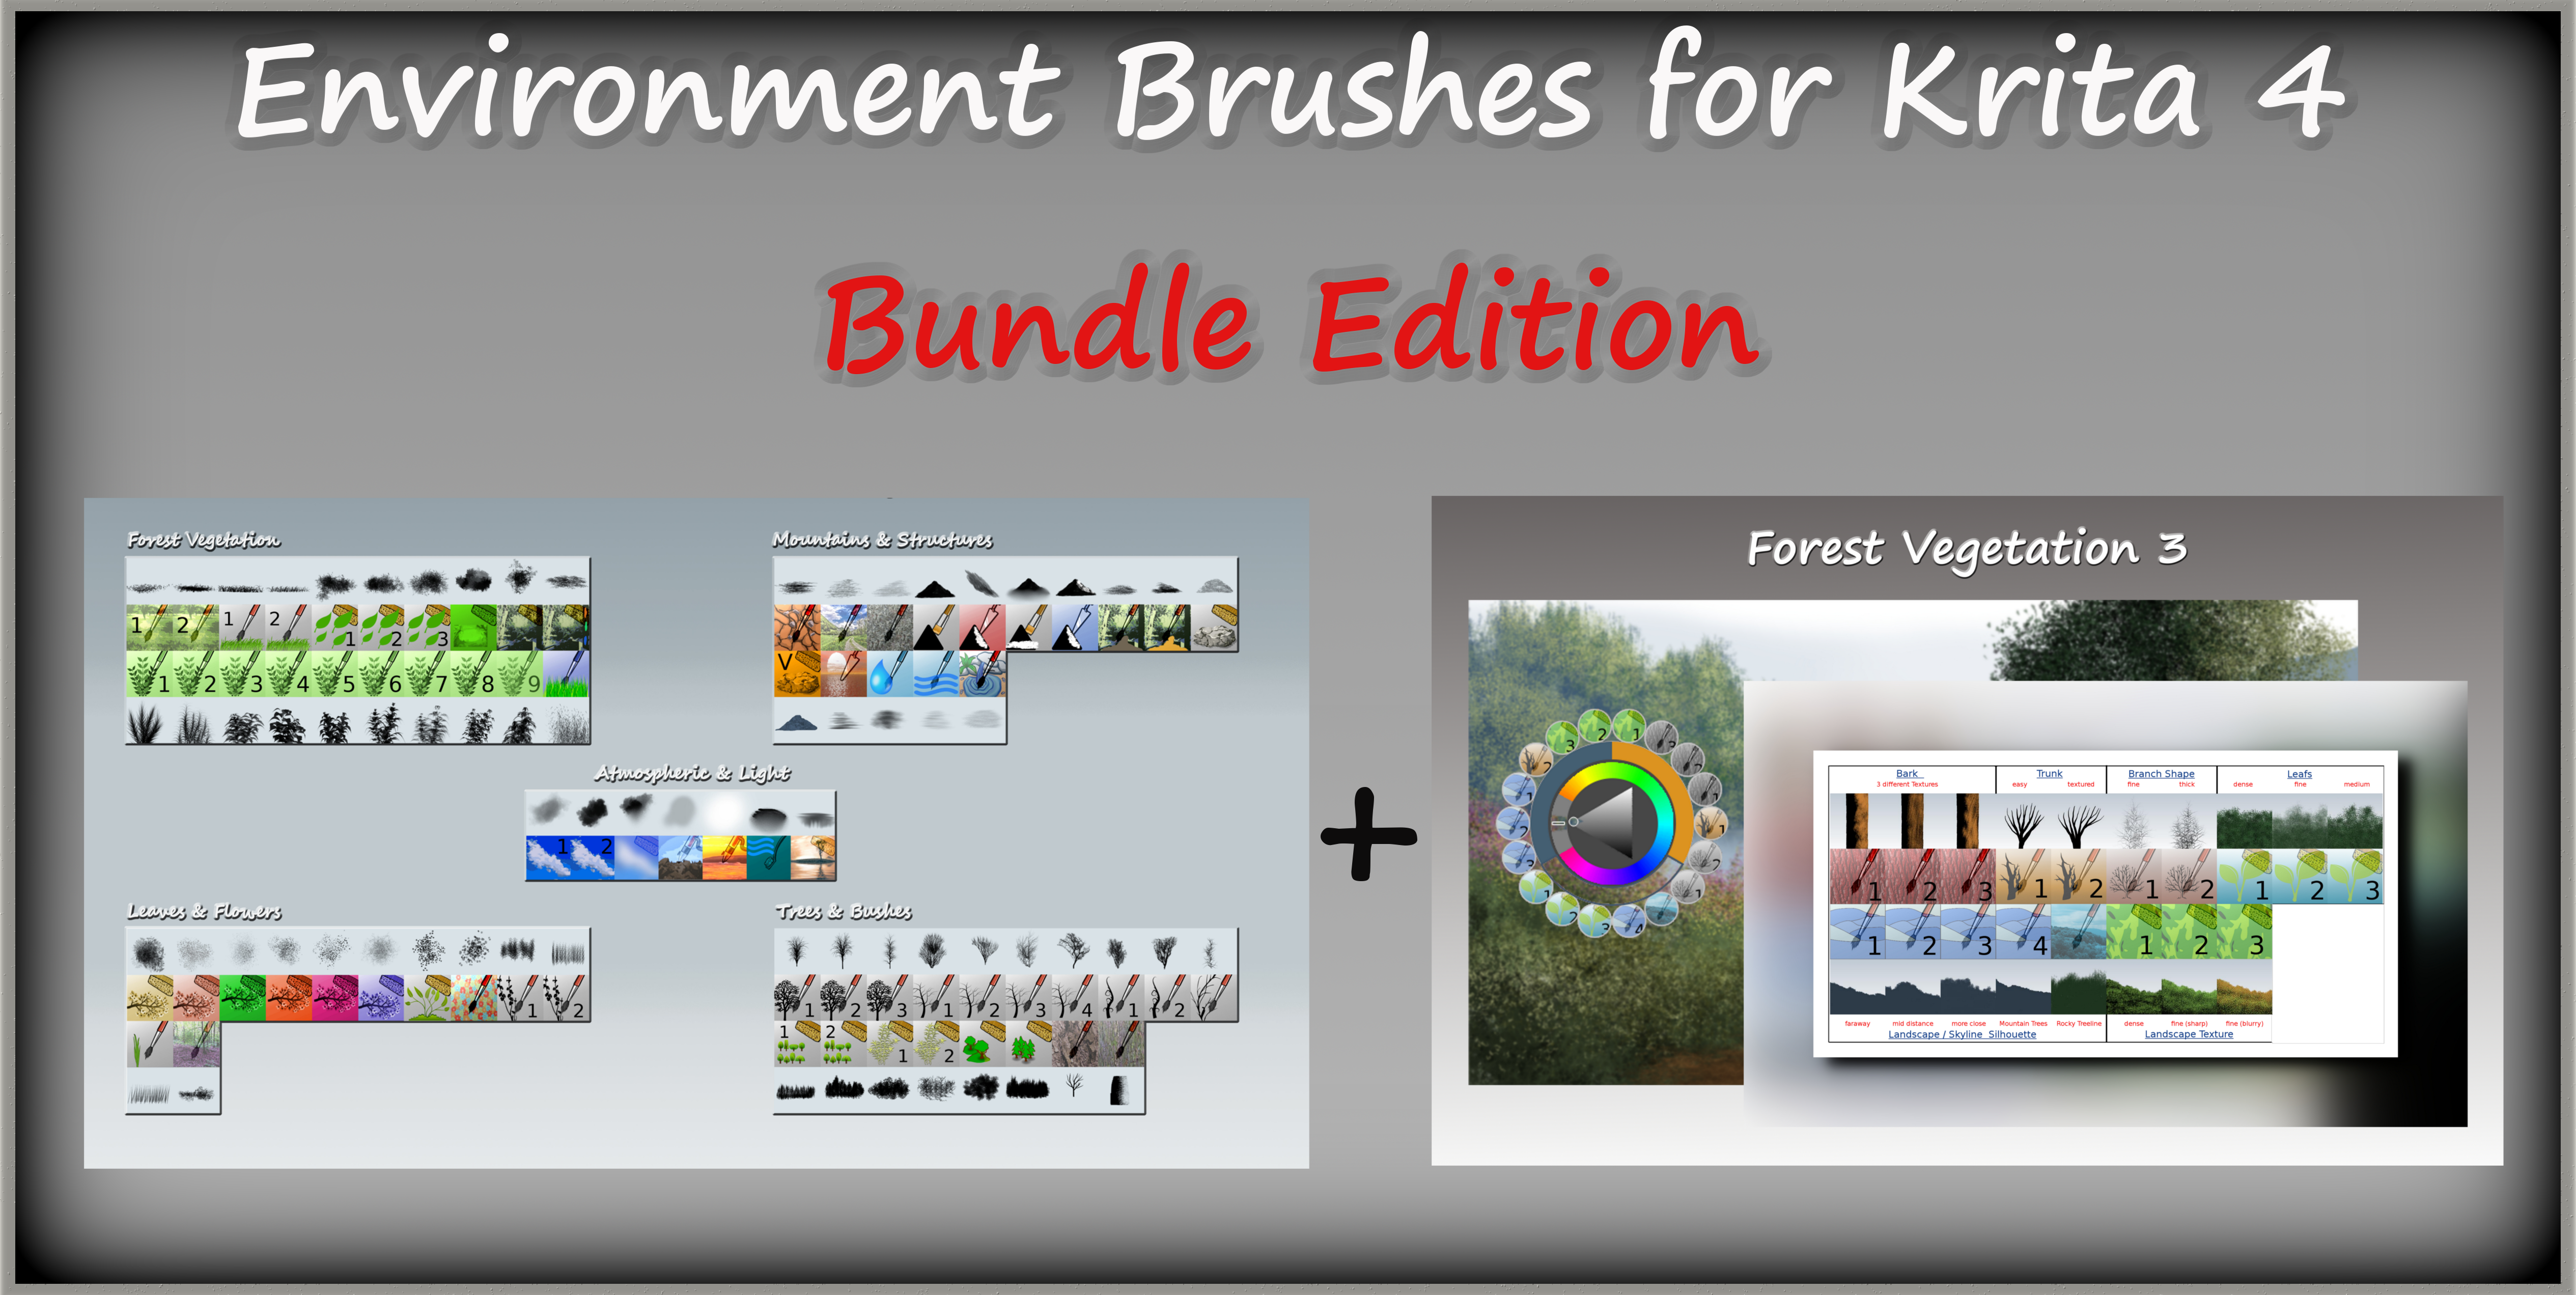 Environment Brushes and Forest Vegetation 3